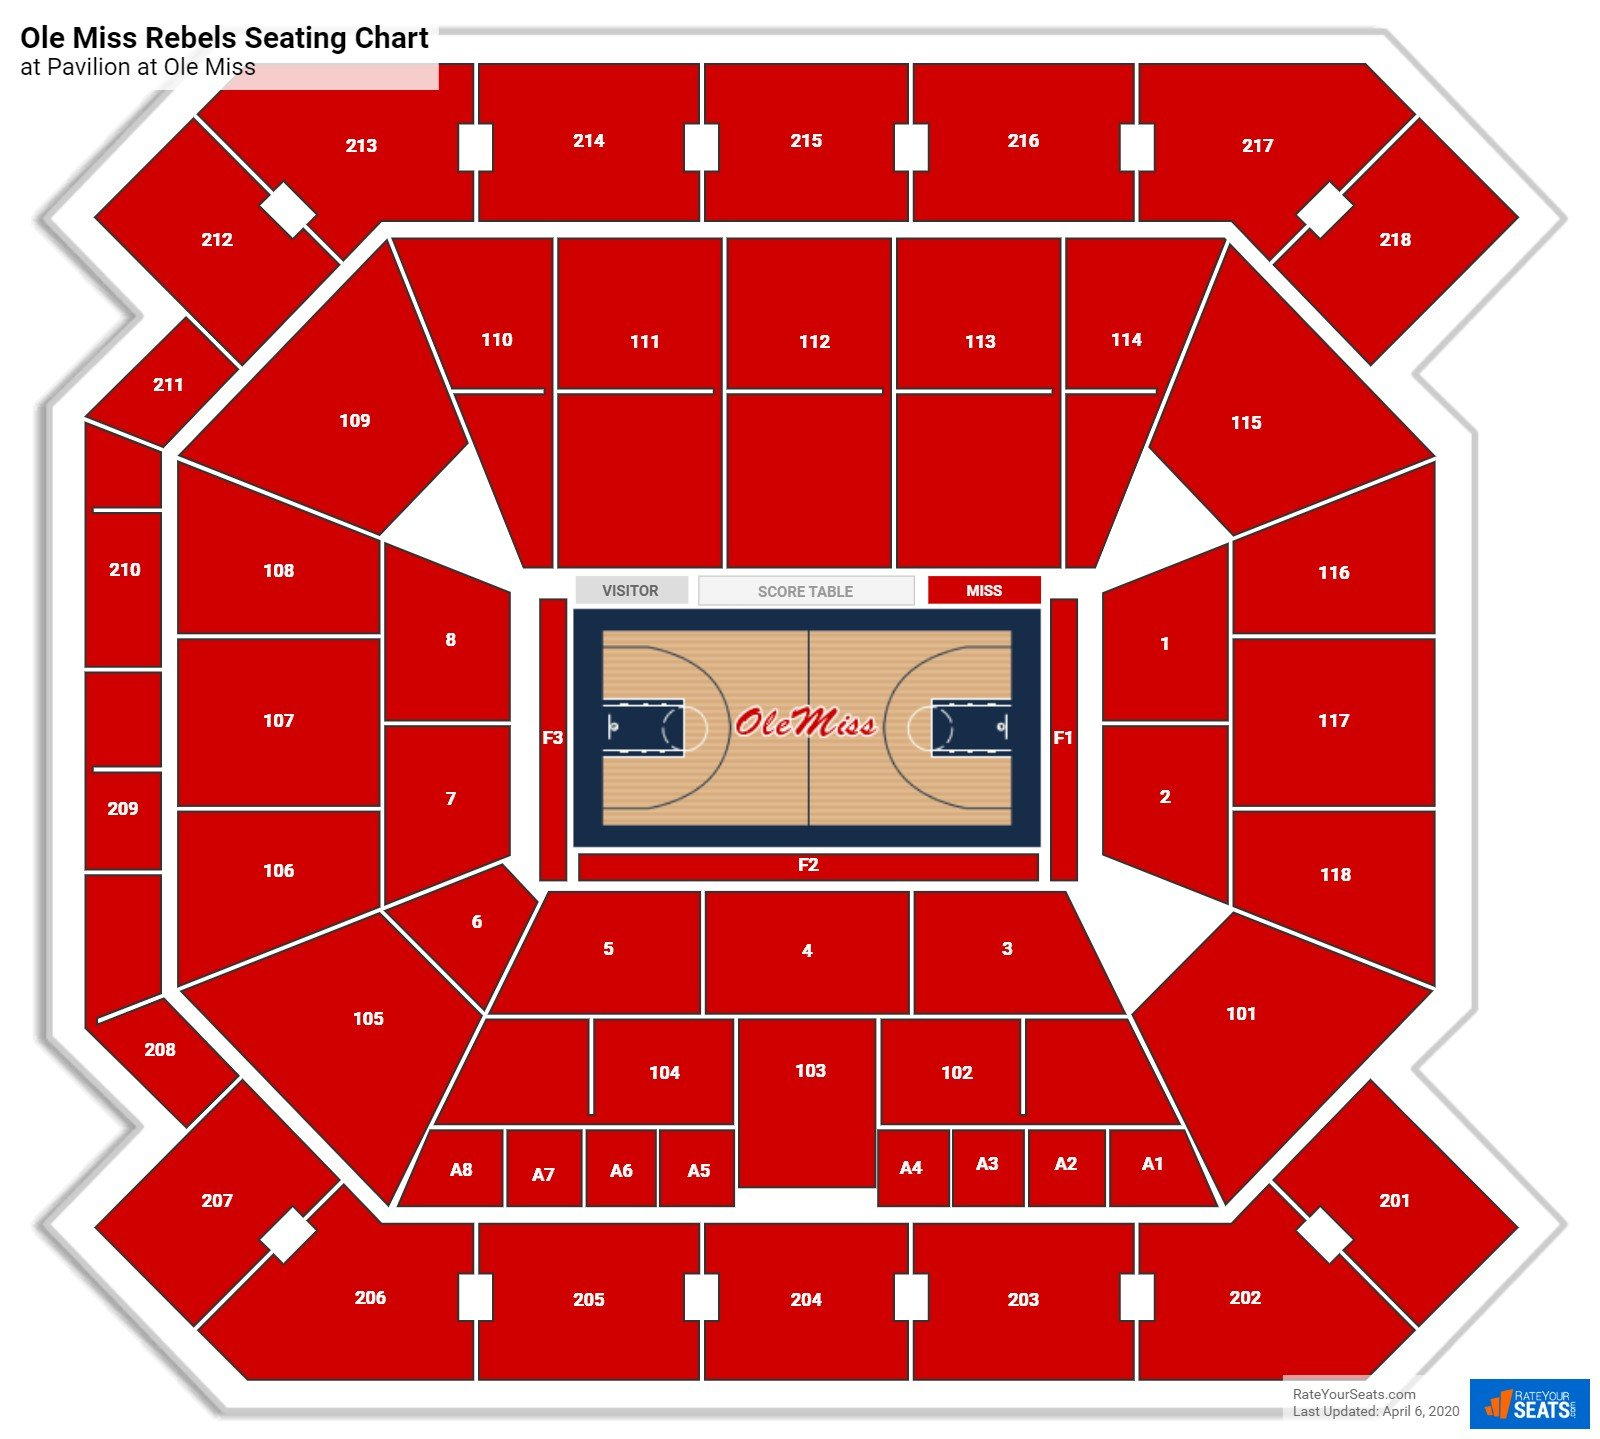 Ole Miss Basketball Seating Chart